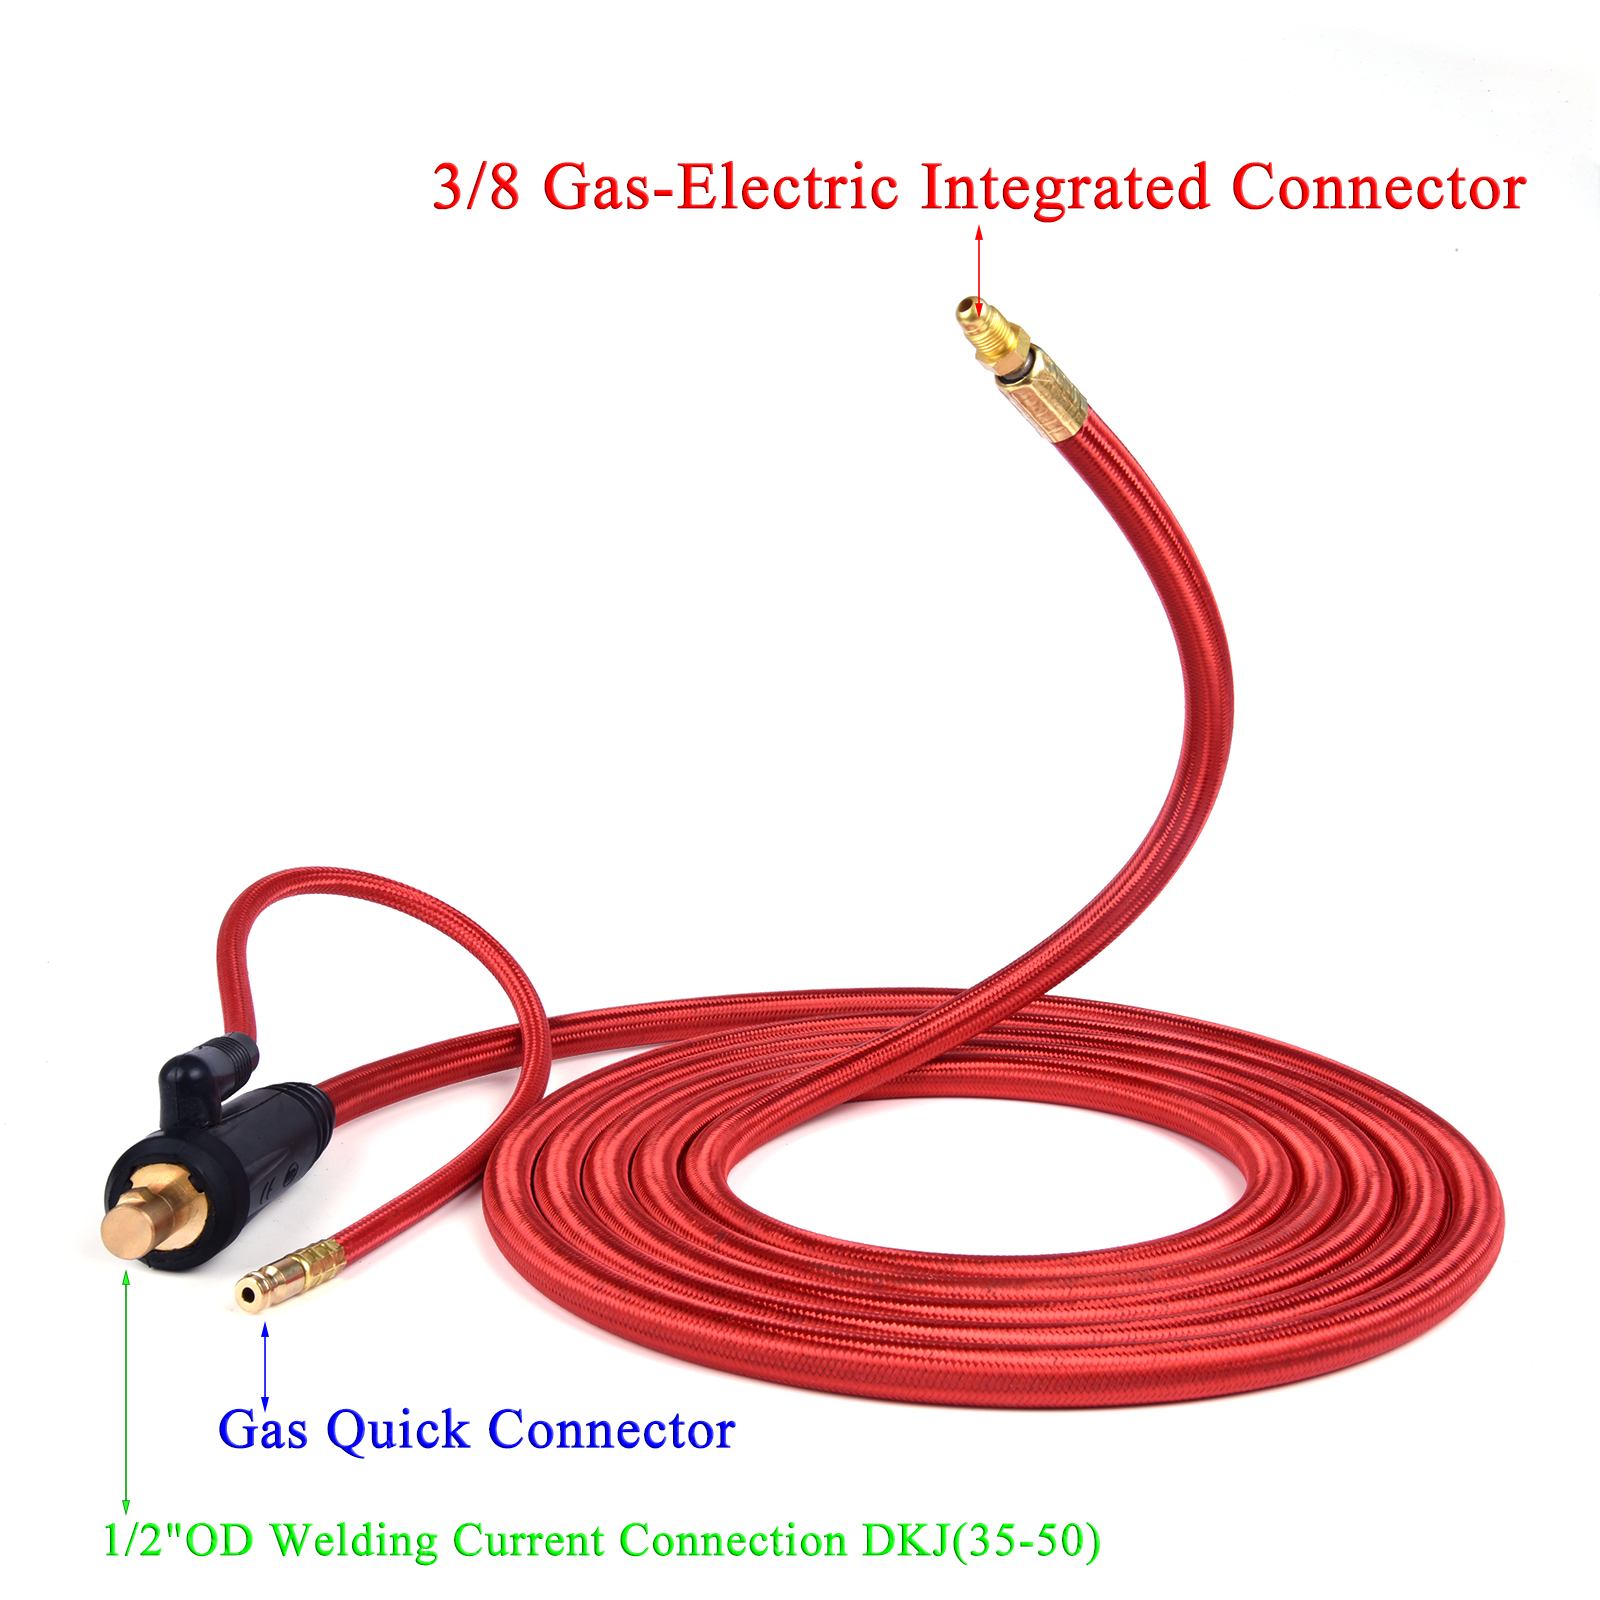 Gas TIG Connector Euro 5 Wires Rubber 8 Connector WP9 Cable Welding Integrated UNF 4M 50 35 Quick Torch 13Ft Electric Hose